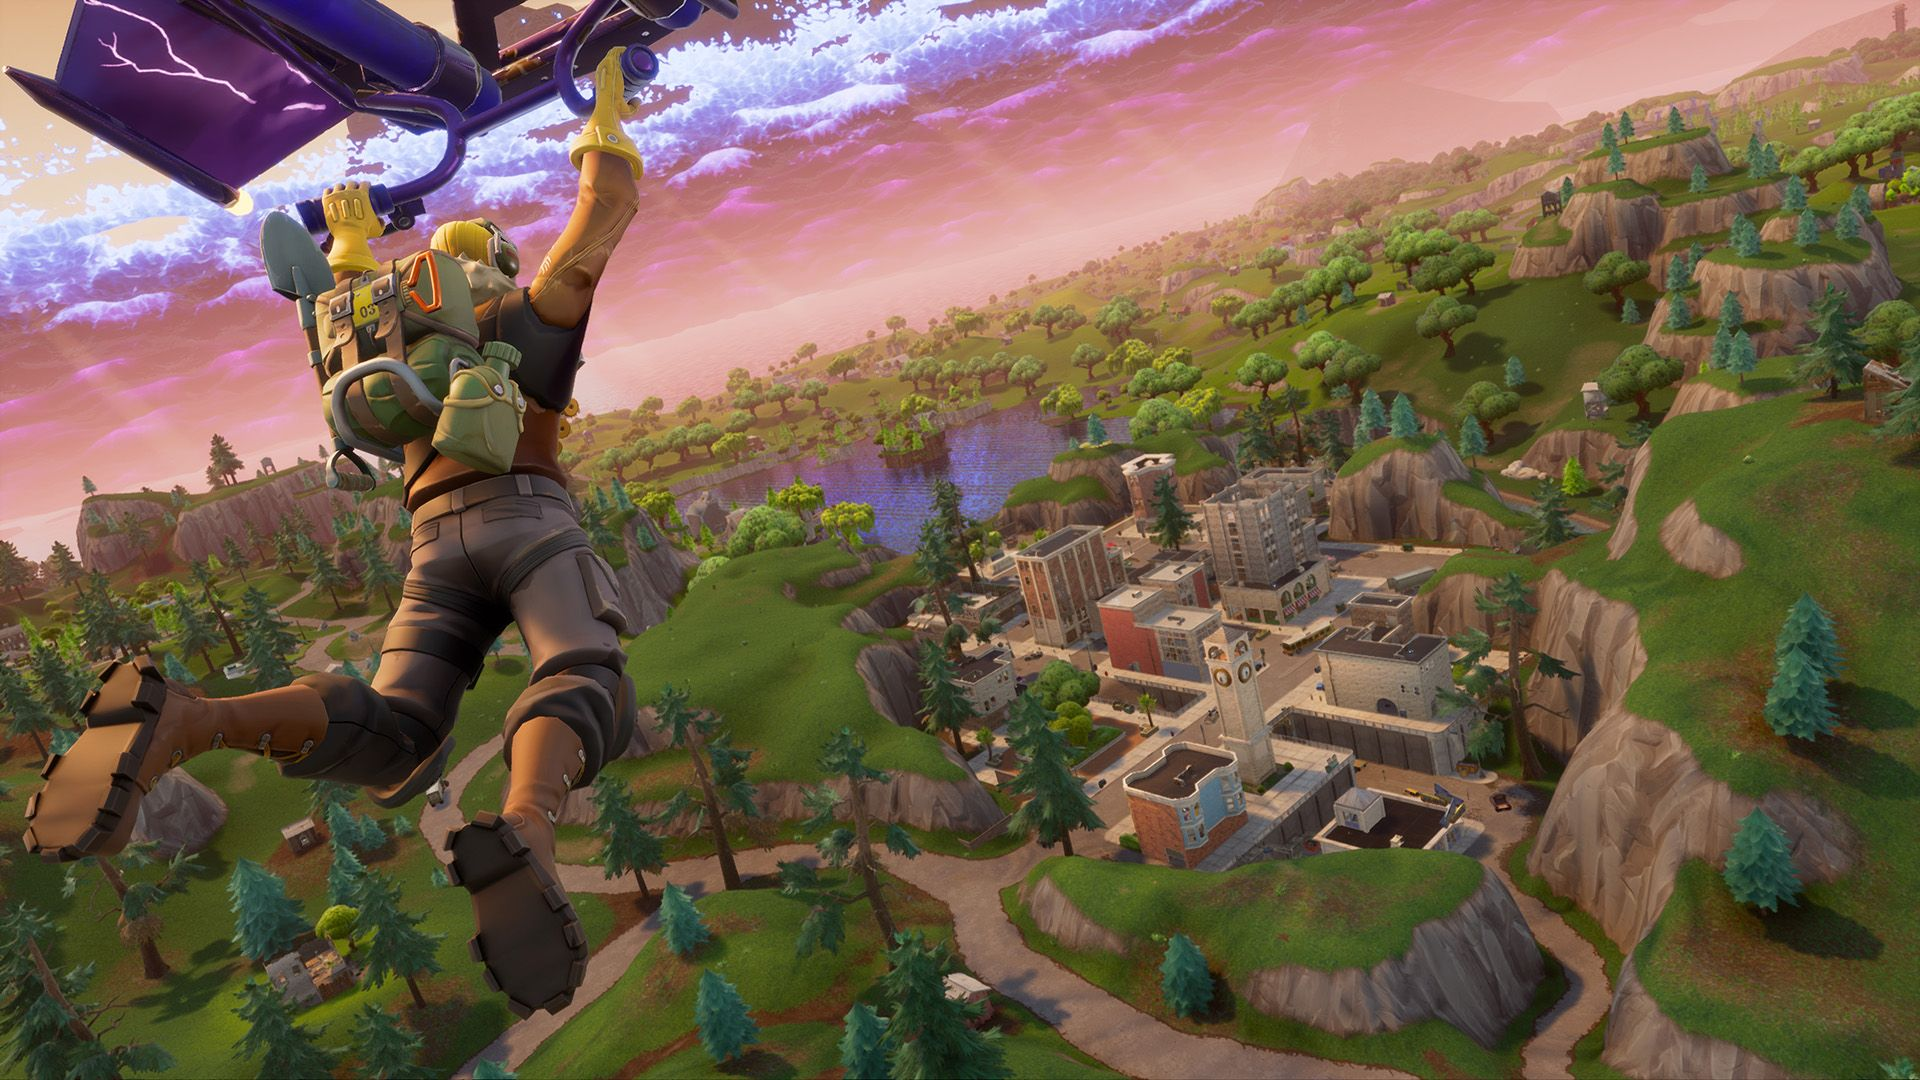 1920x1080 Epic Admits To Be Focusing on Fortnite Rather Than Paragon